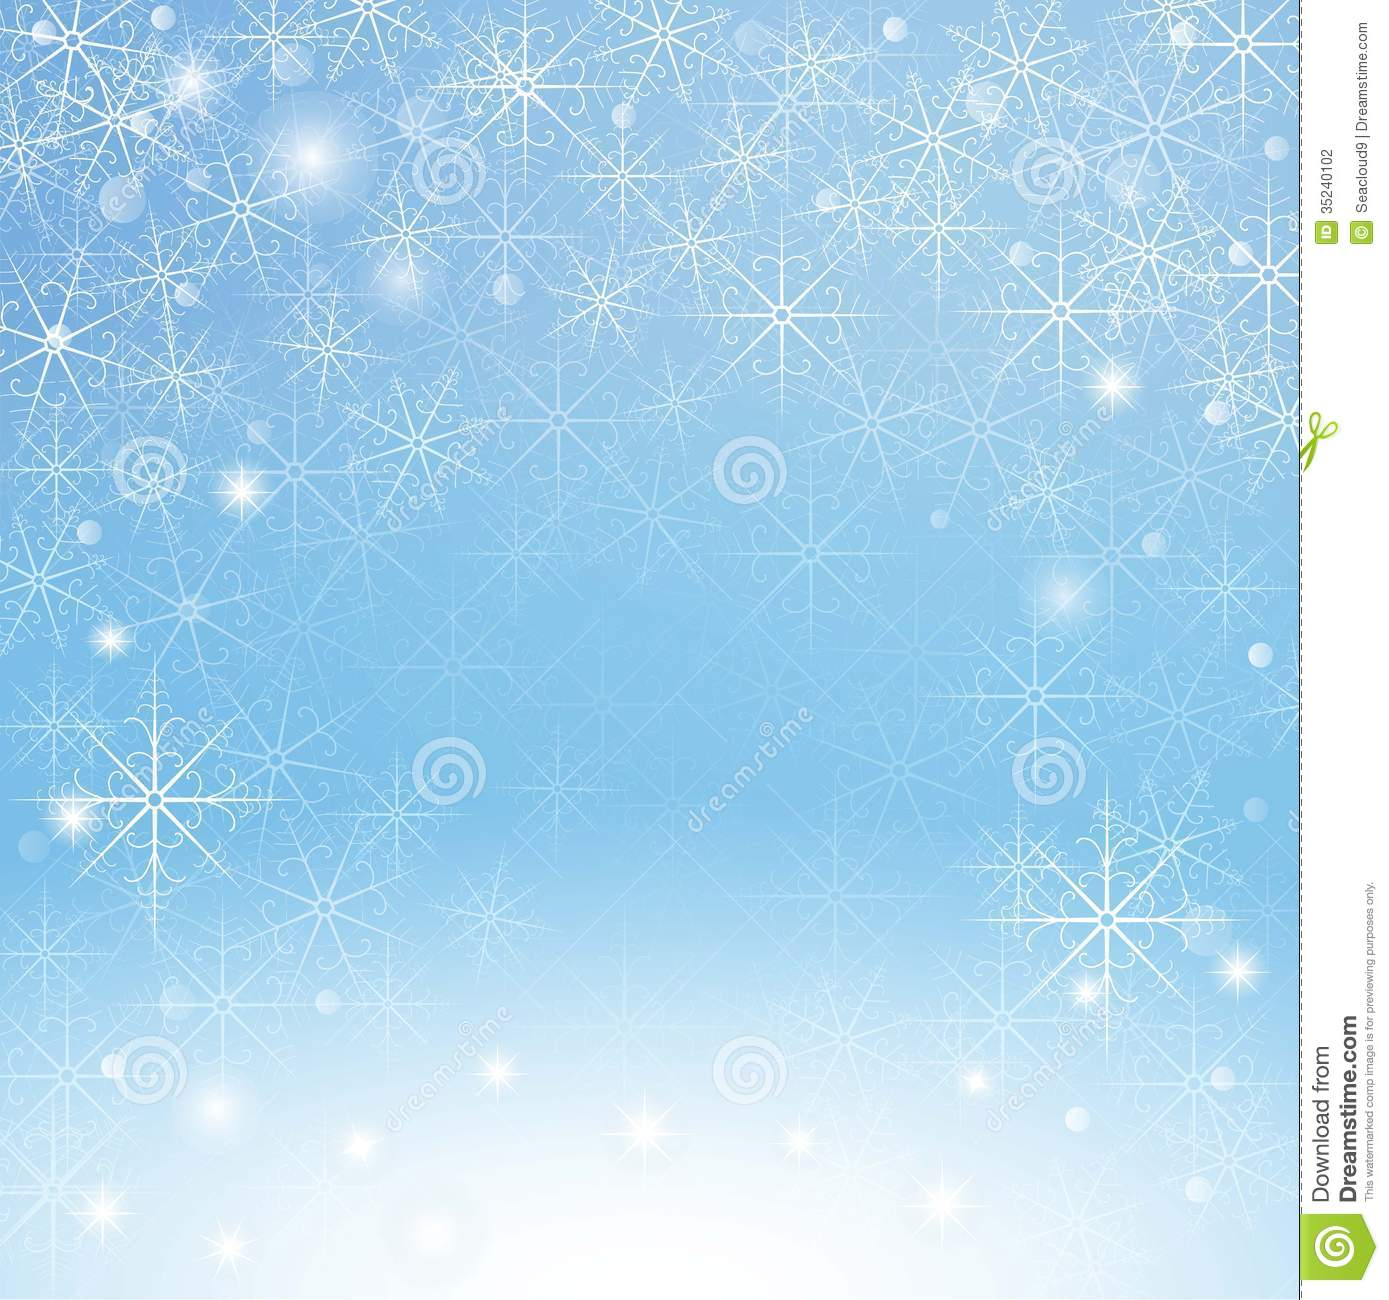 3d Snow Falling Wallpaper Winter Snowflakes Background Stock Photography Image